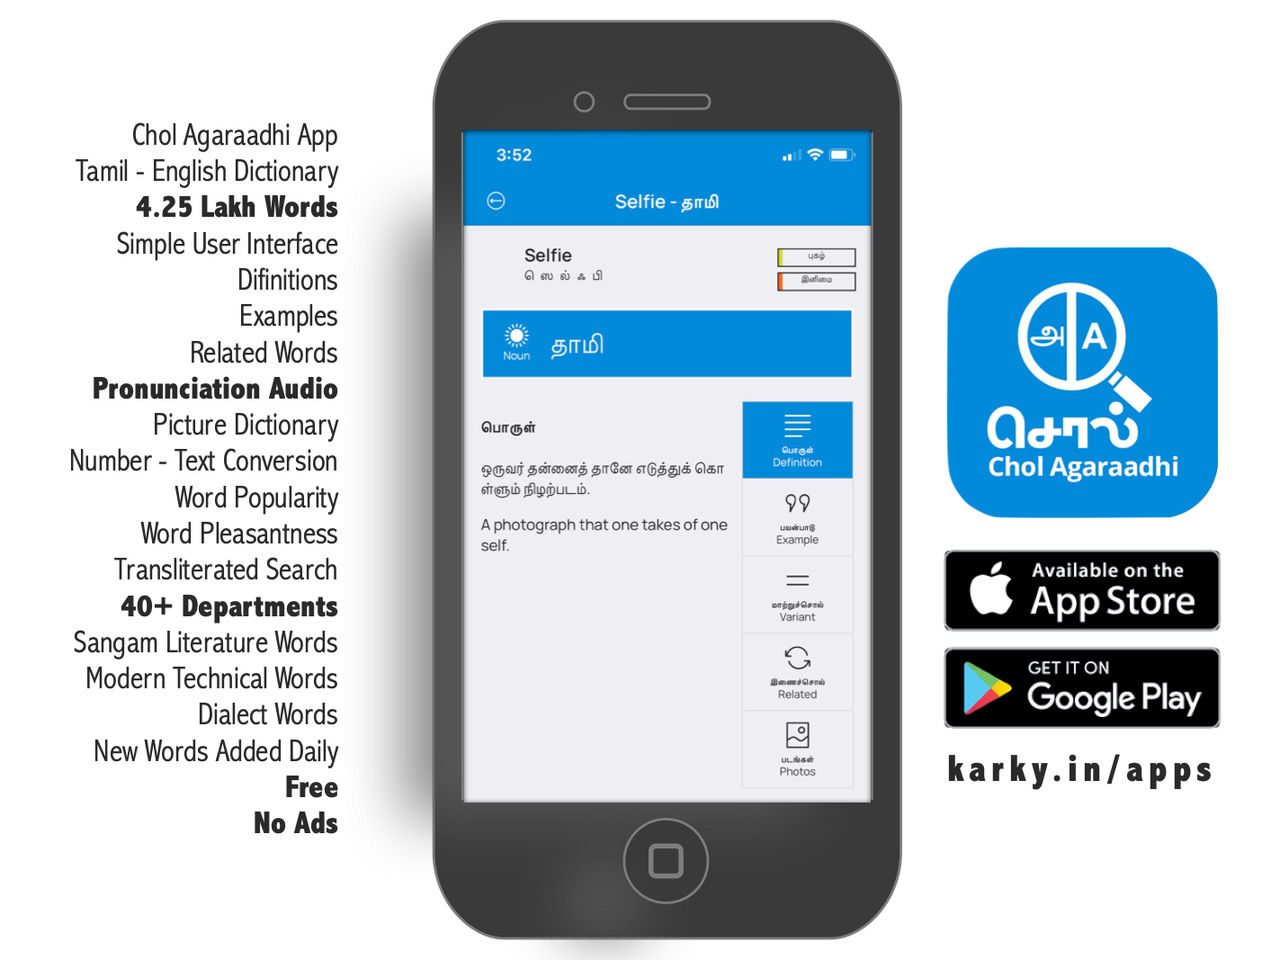 Karky Research Foundation Launches Chol Agaraadhi Mobile App